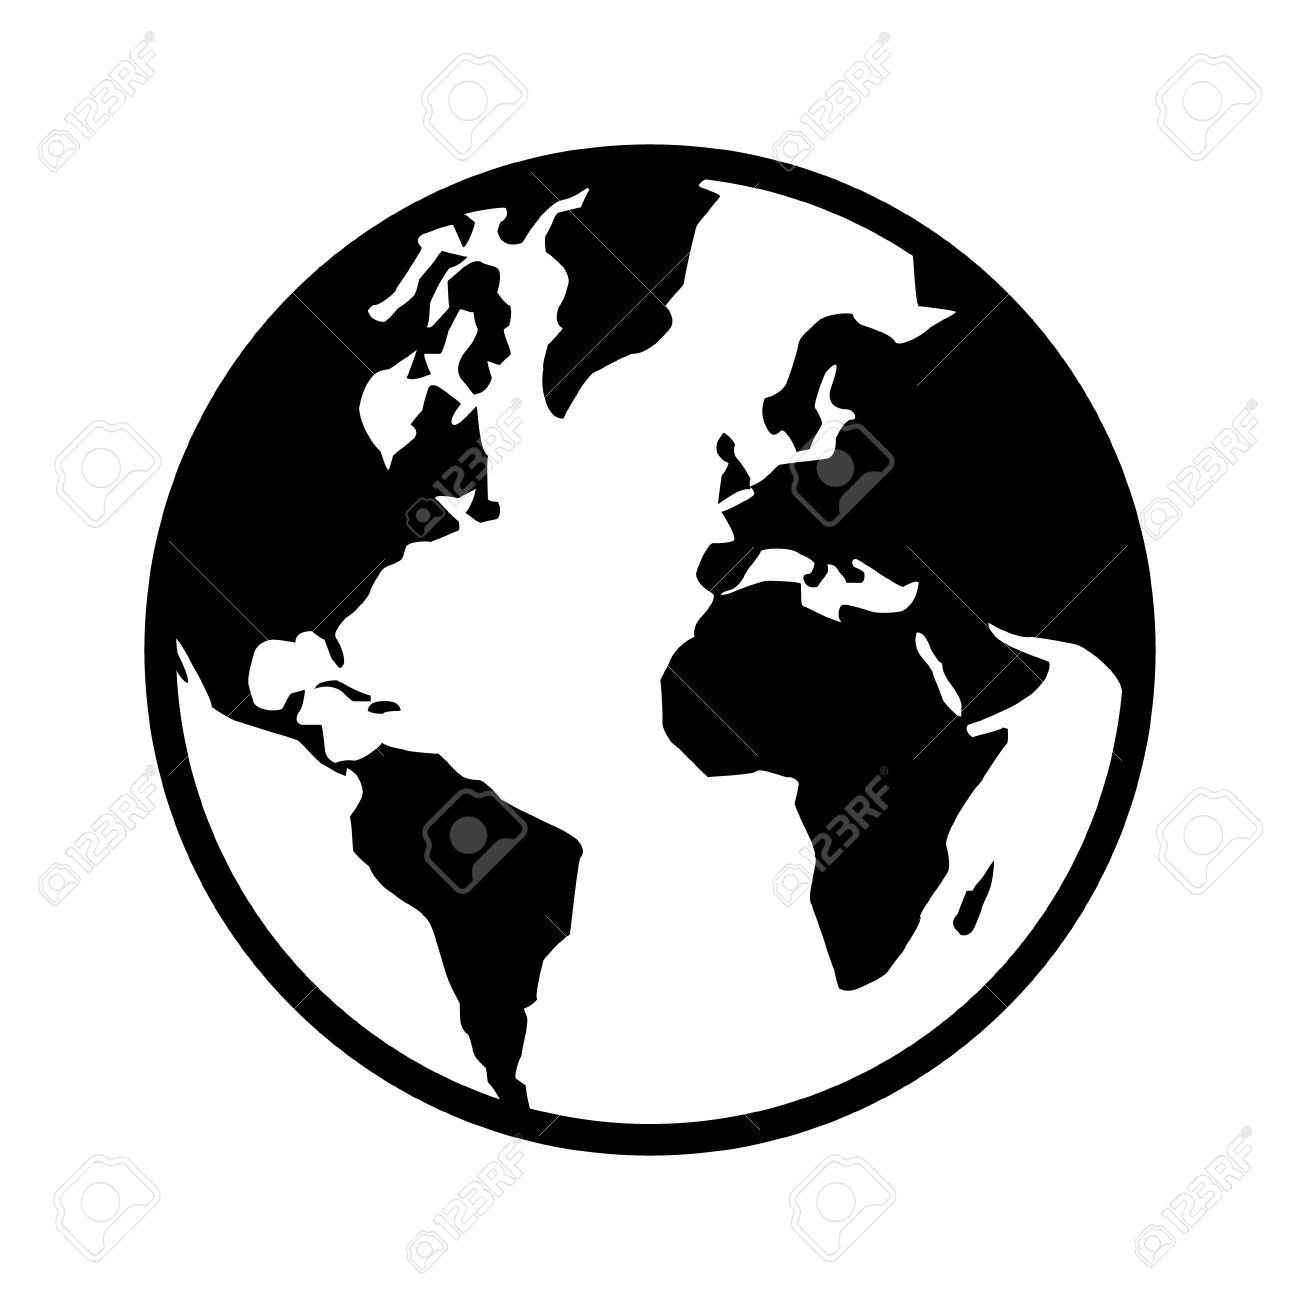 World Silhouette Vector